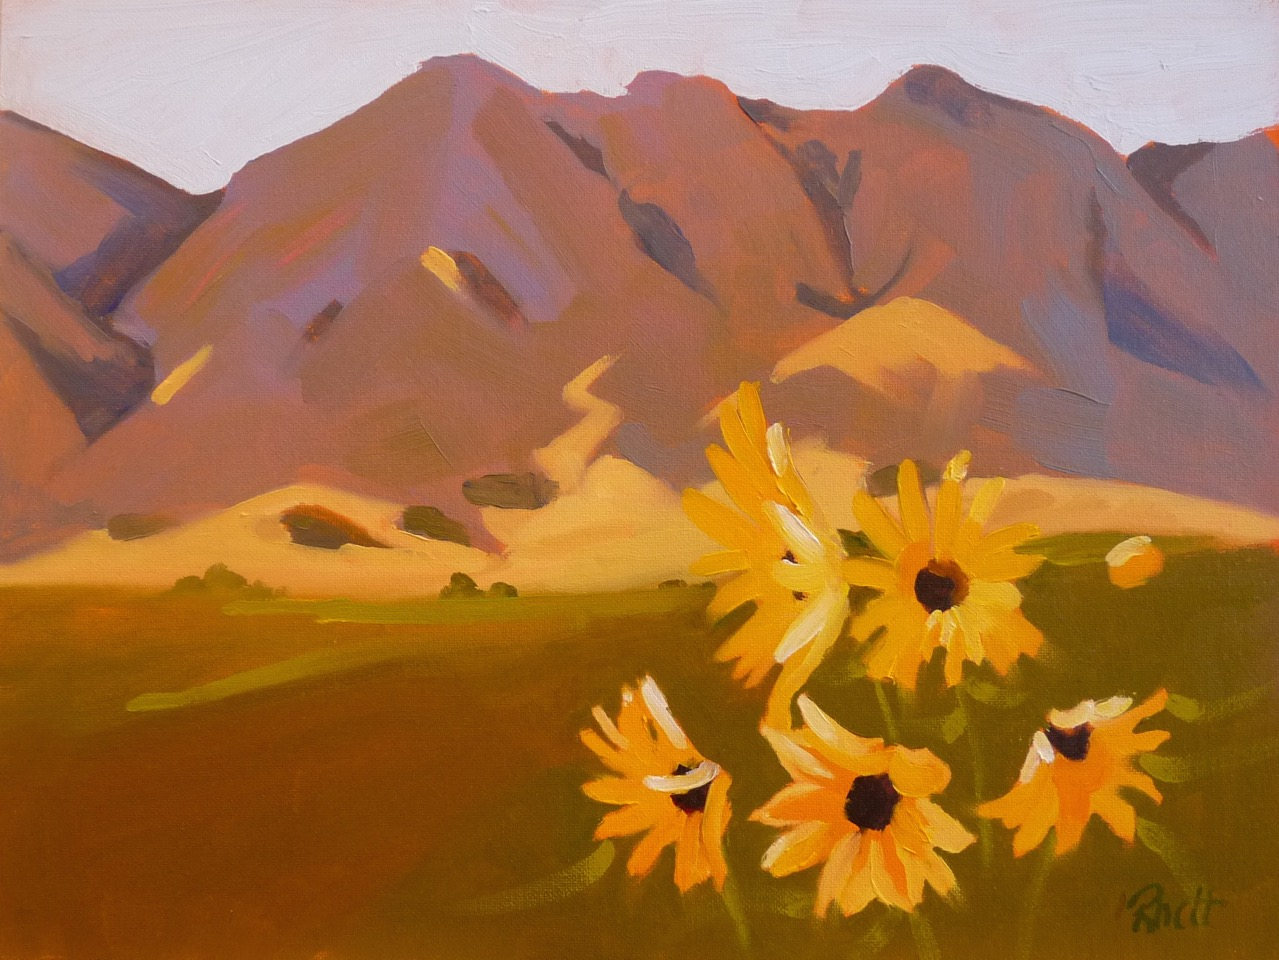 Wyoming Sunflowers II, 9x12